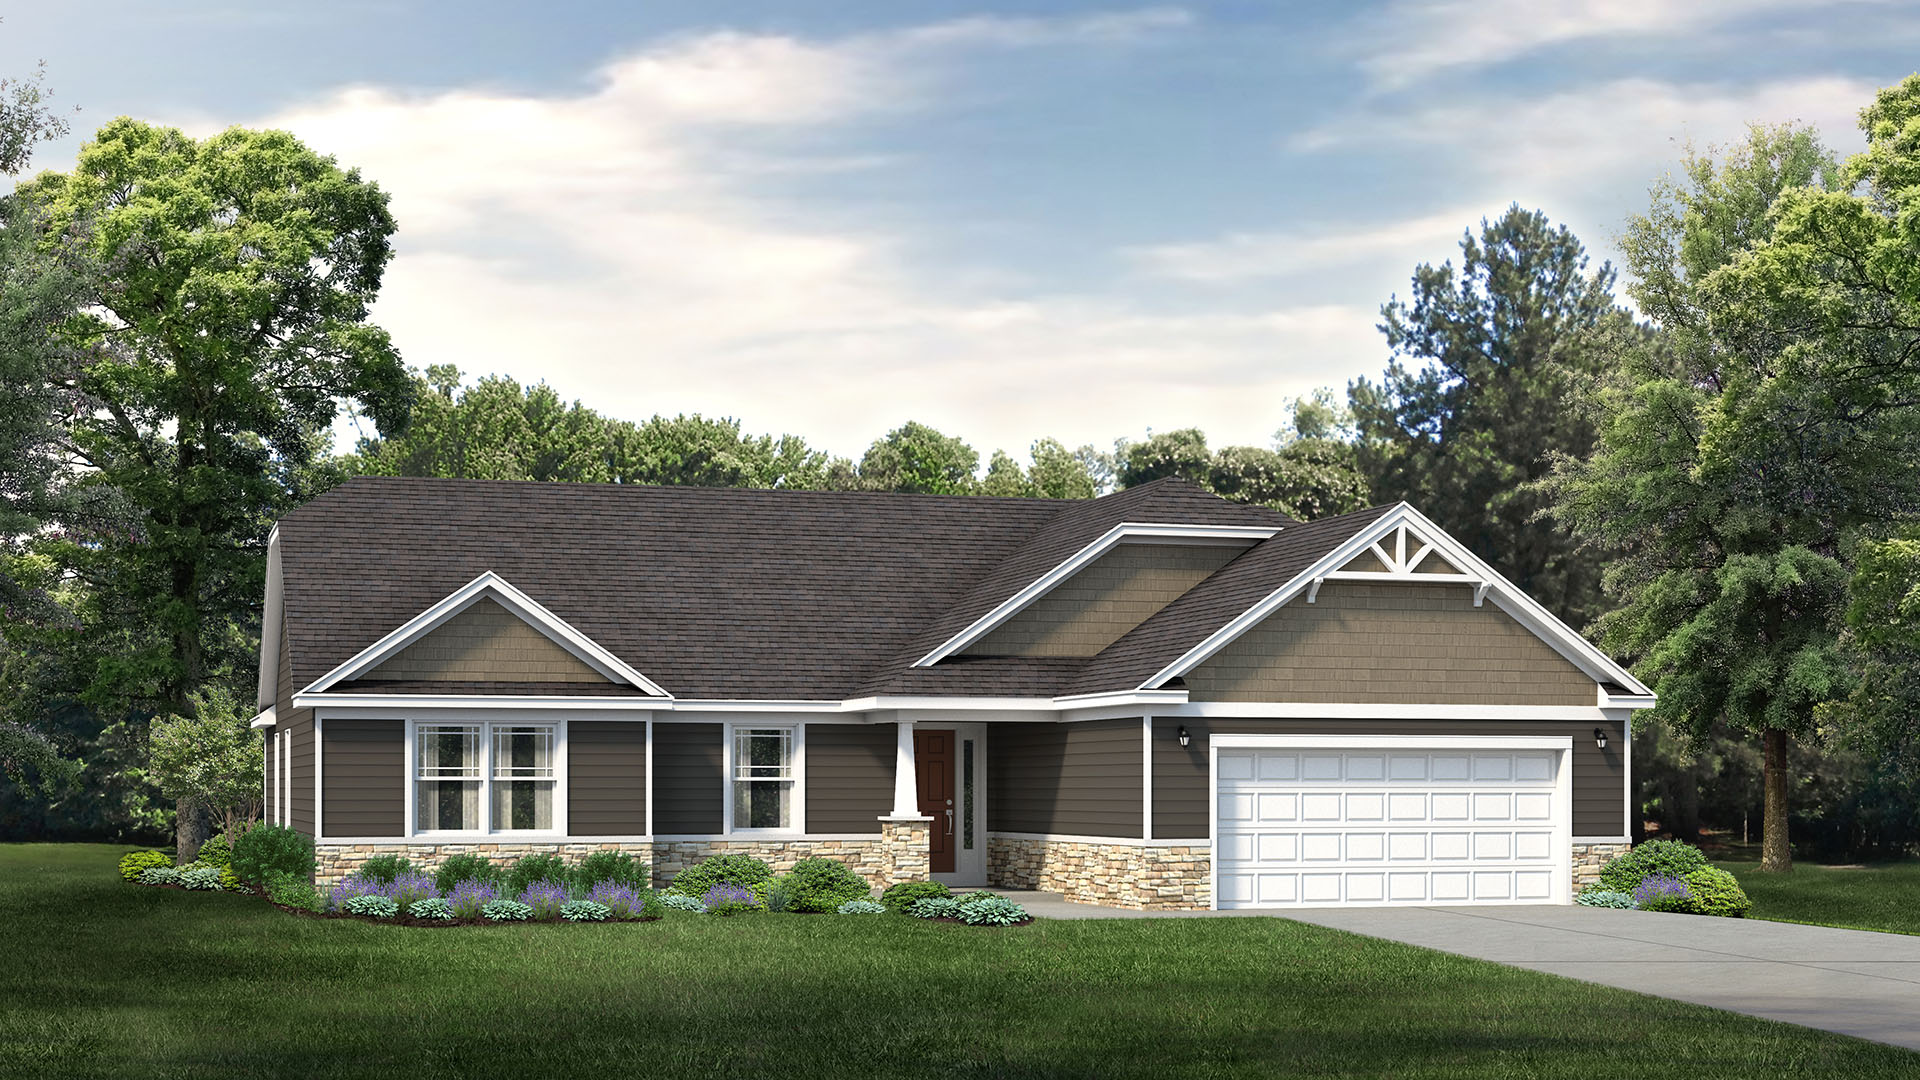 S&A Homes Introduces New Ranch Design: The Sheridan